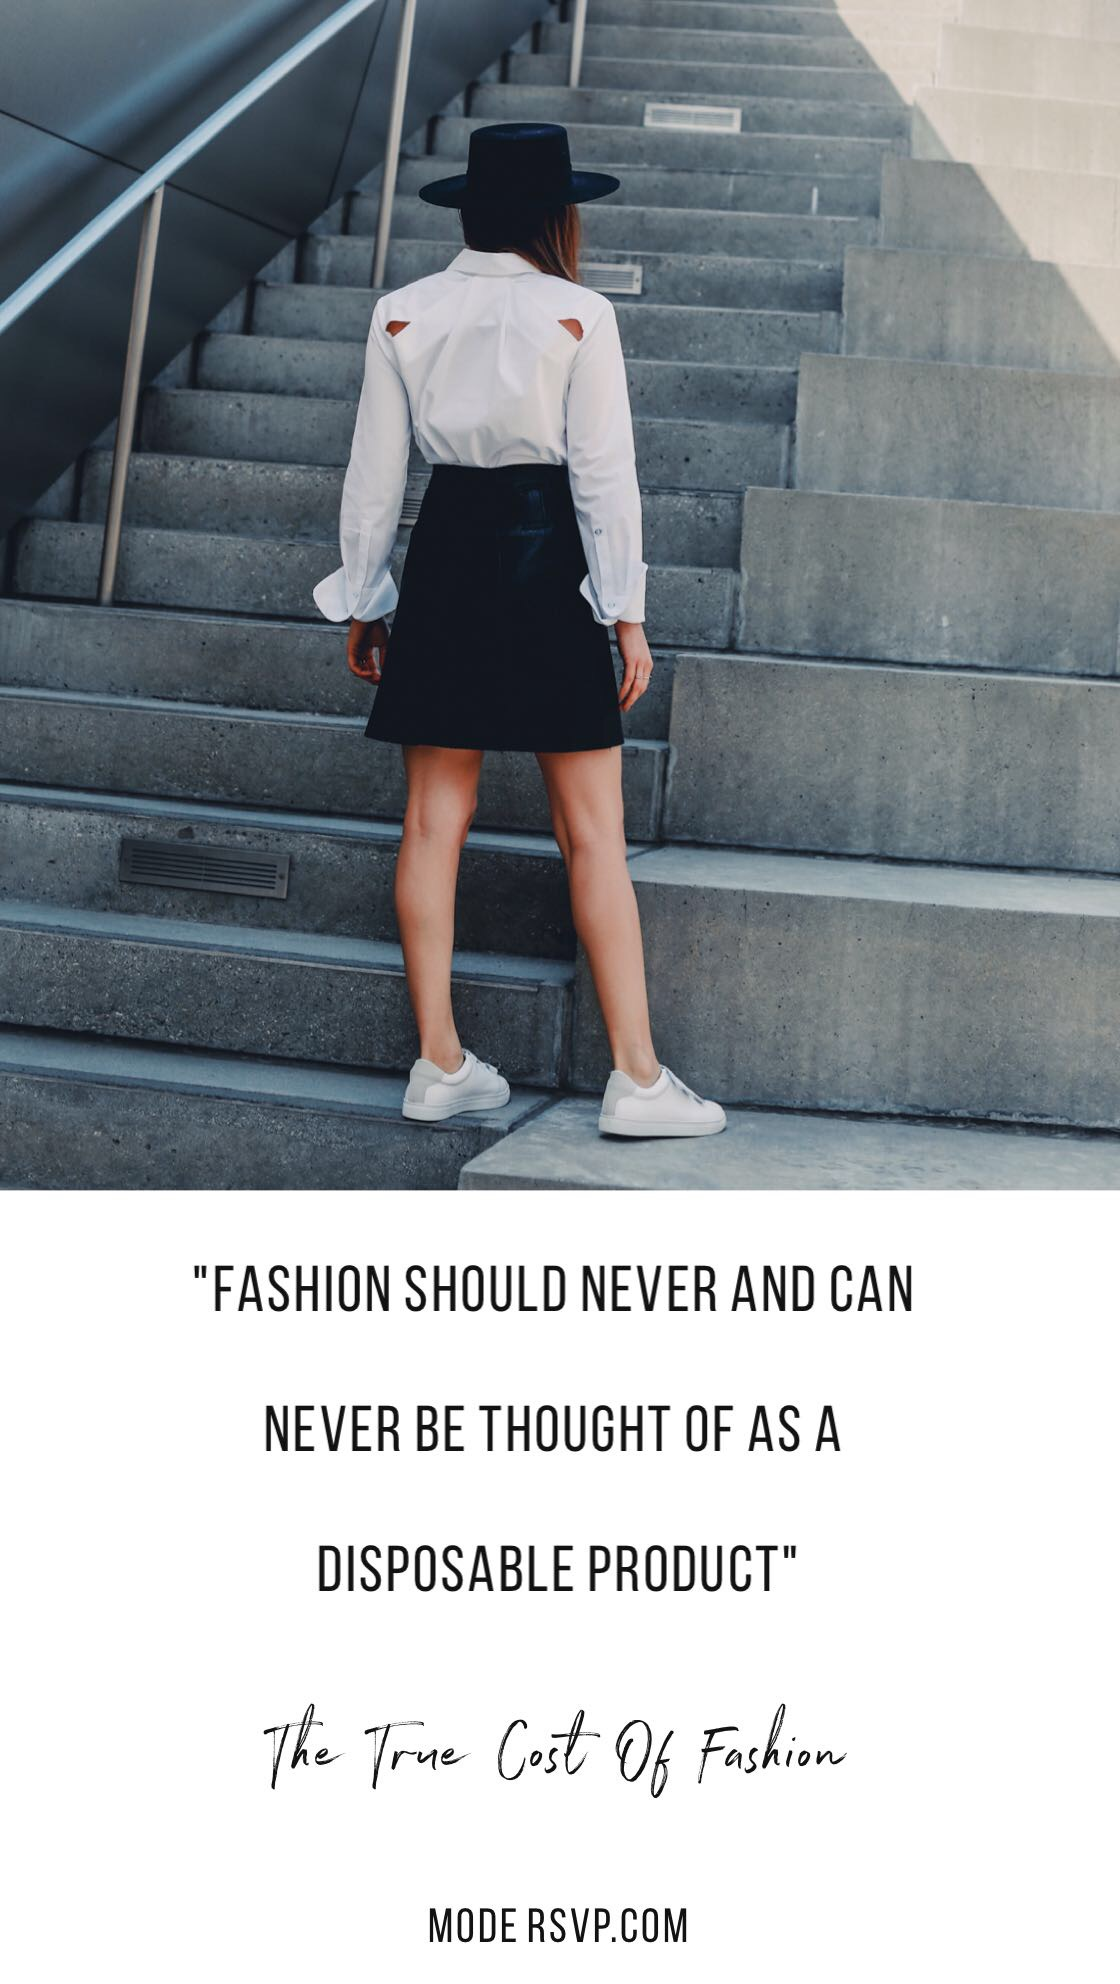 Best Style quotes - Inspirational Fashion Quotes - Fashion should never and can never be thought of as a disposable product. The True Cost of Fashion- Read more style quotes from Anna Wintour, Diane Von Furstenberg, Coco Chanel and other fashion designers and style icons on Houseofcomil.com